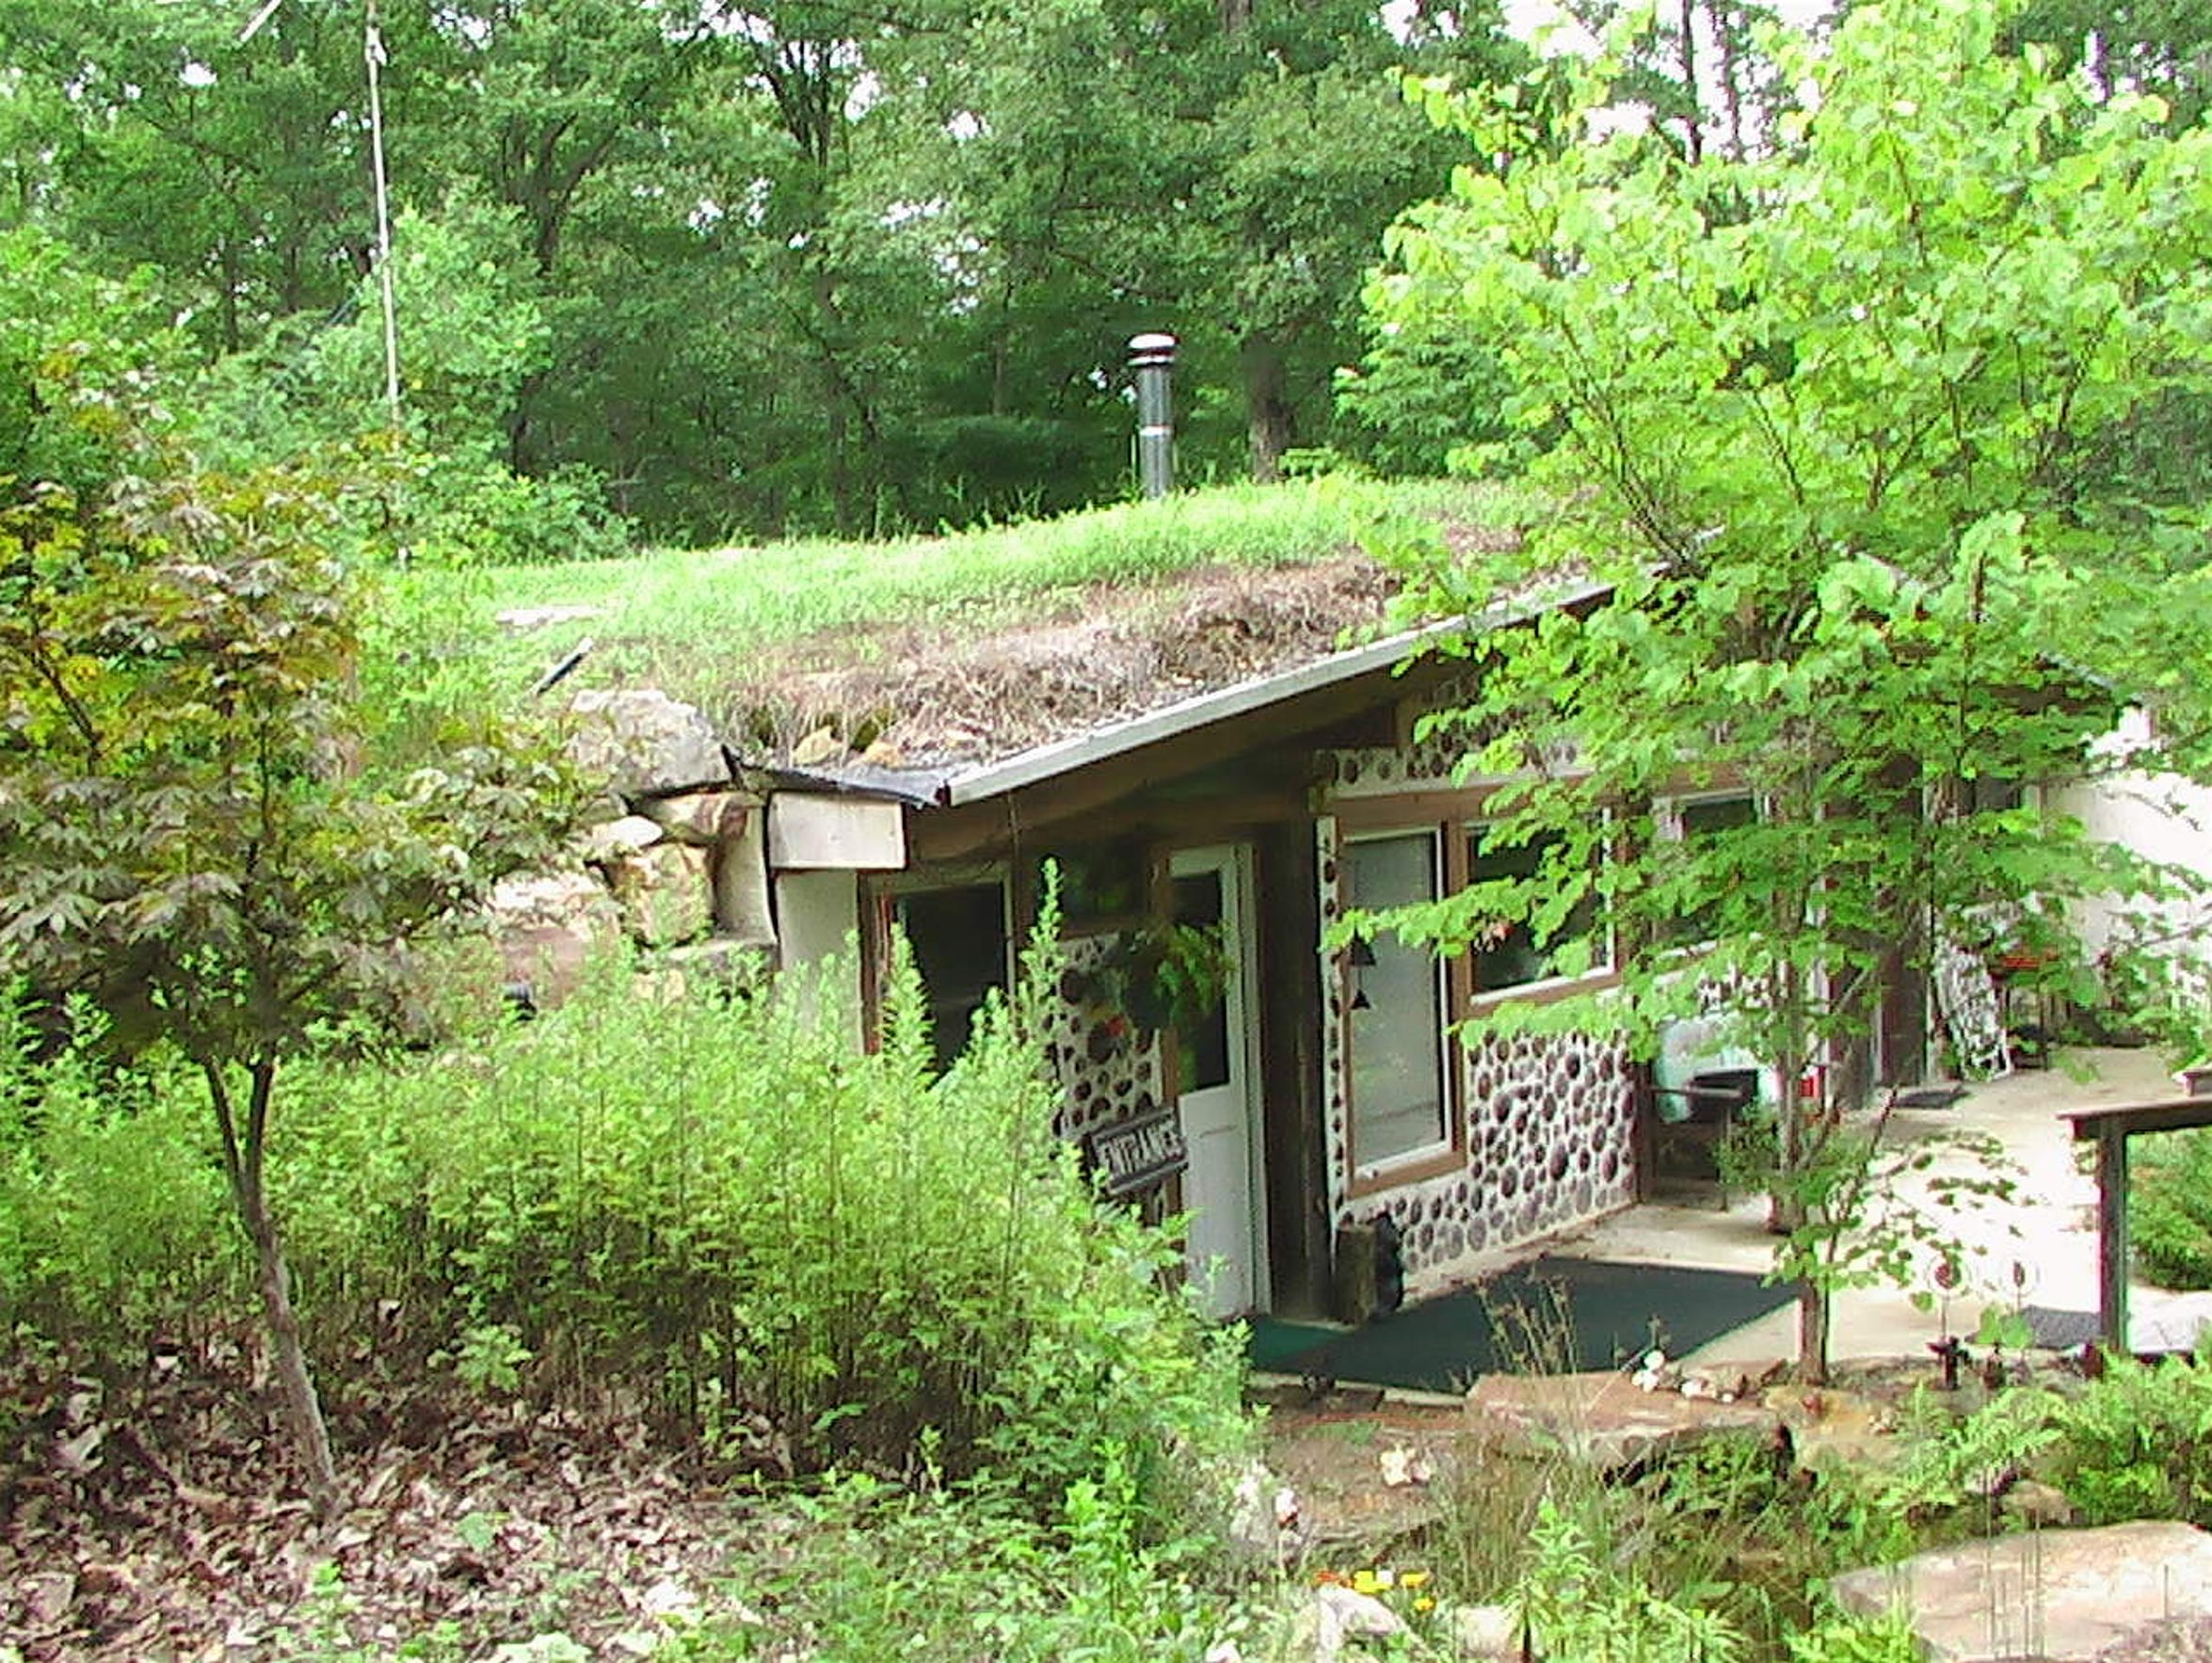 A cottage at Alapine, a women's community on 108 country